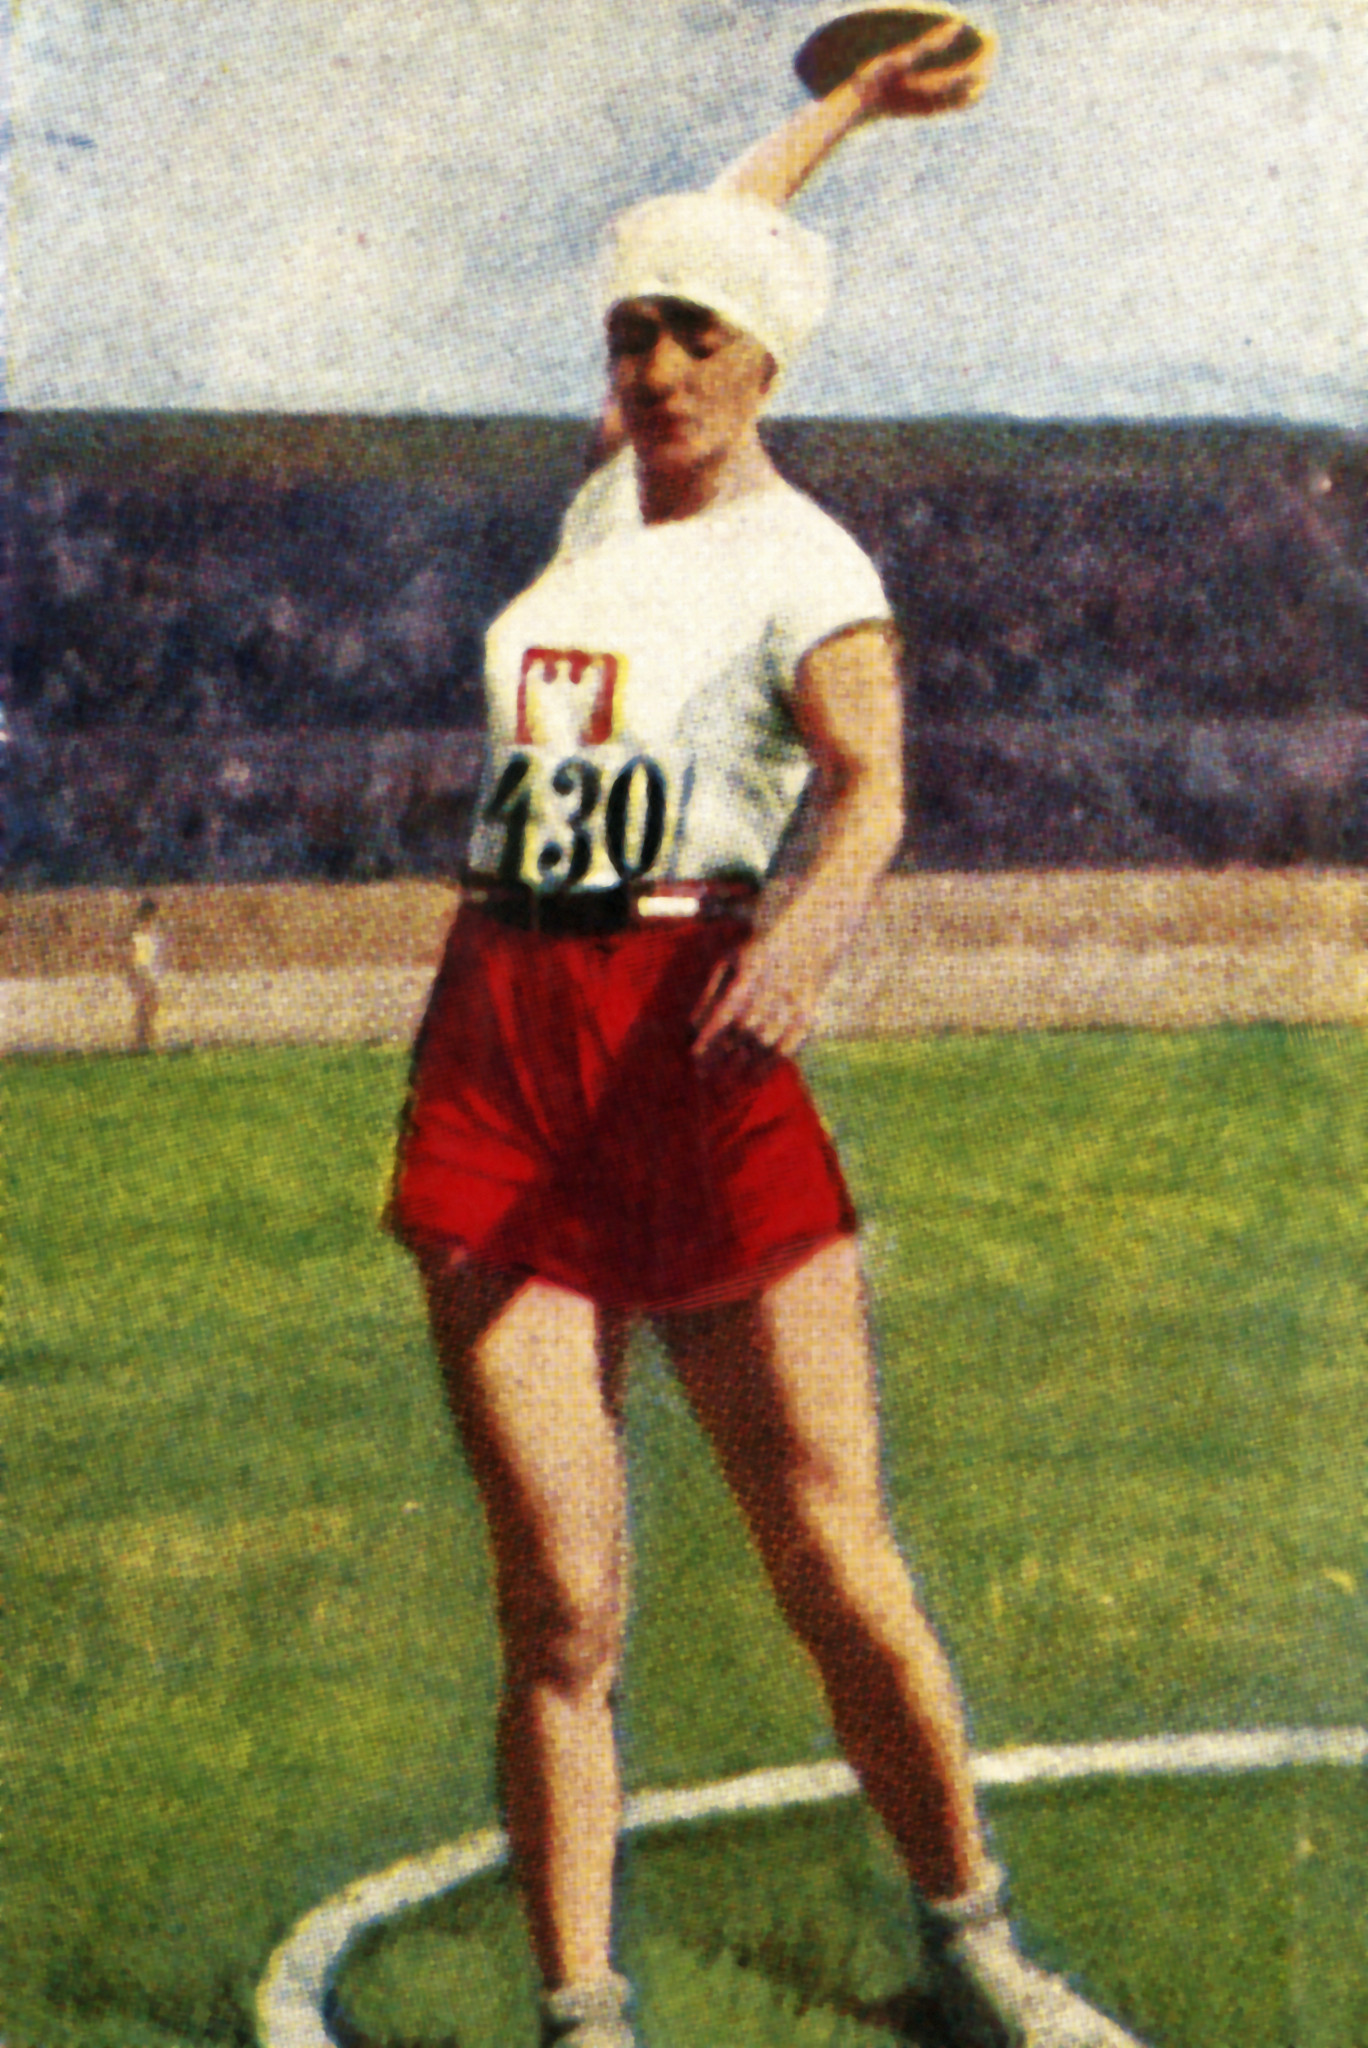 Poland's first Olympic gold medallist, Halina Konopacka, winner of the discus at Amsterdam 1928, was among the top athletes who started their careers in the country's university sports system ©Getty Images